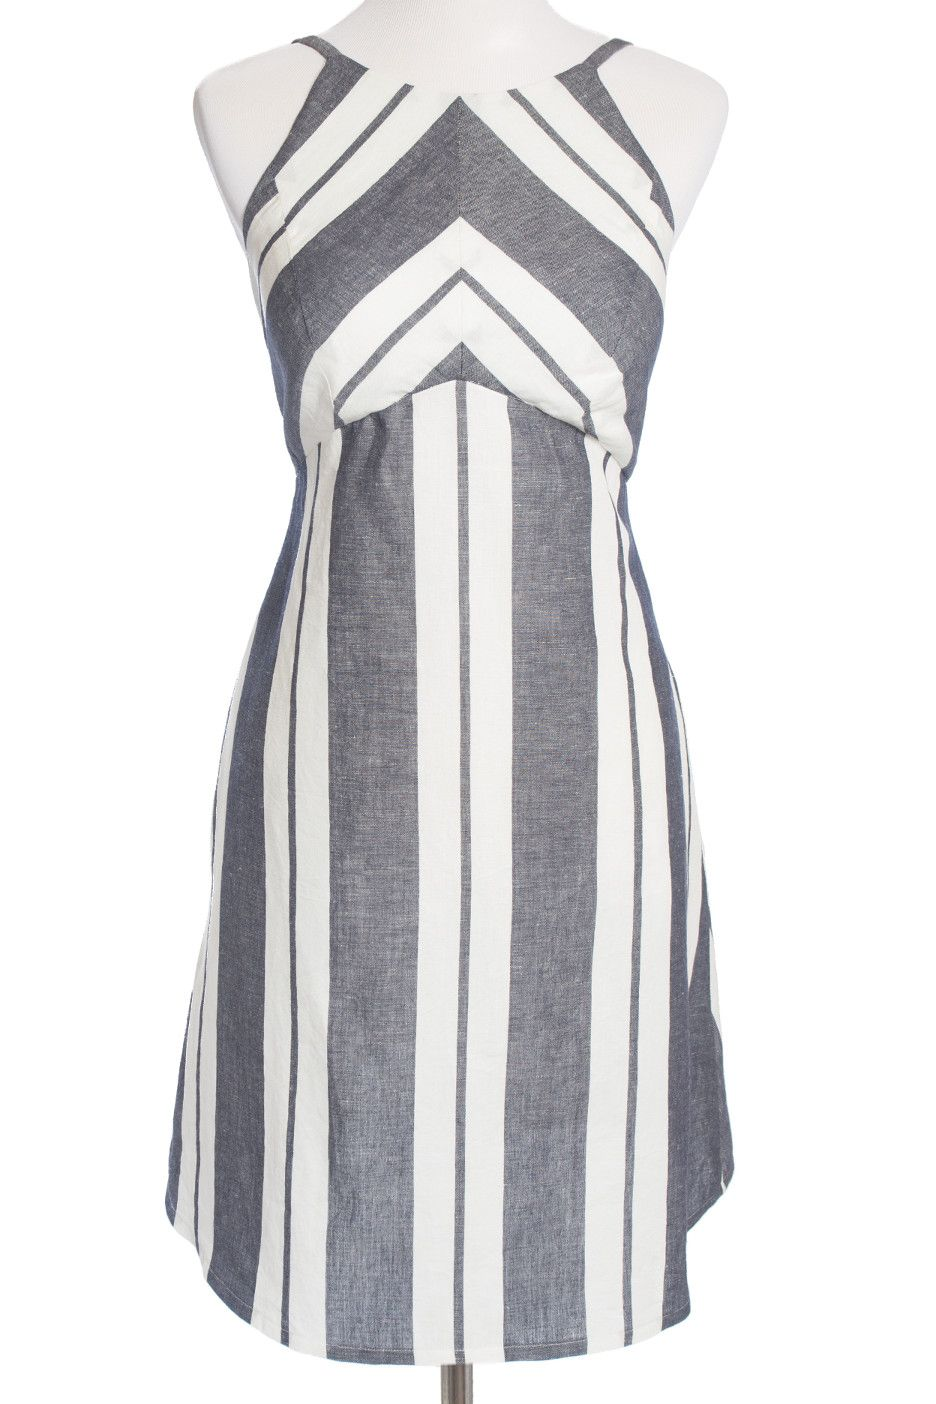 Acton Dress Sewing Pattern by In the Folds   Patrones, Patrones de ...